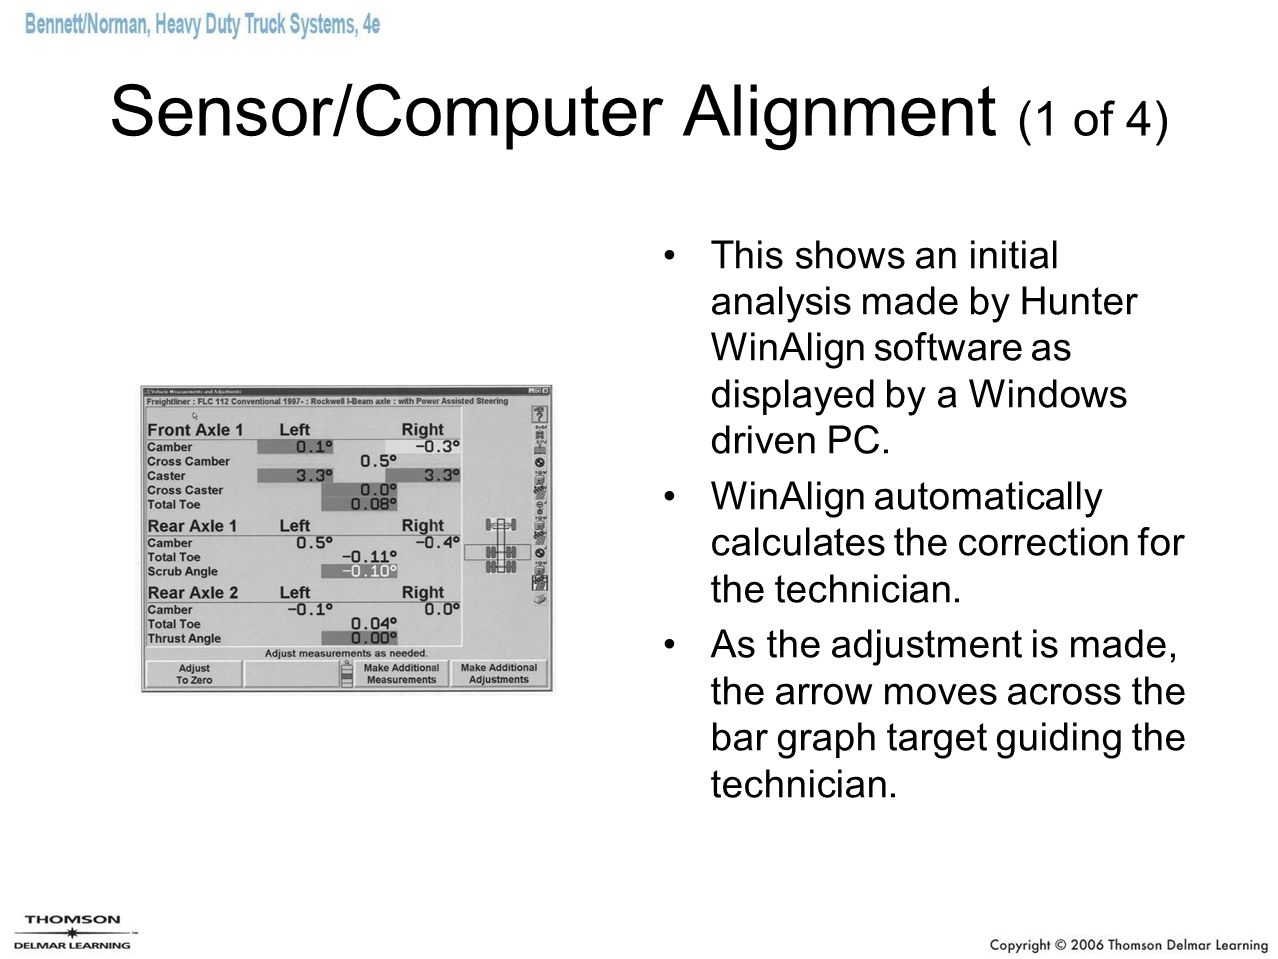 Sensor/Computer Alignment (1 of 4)